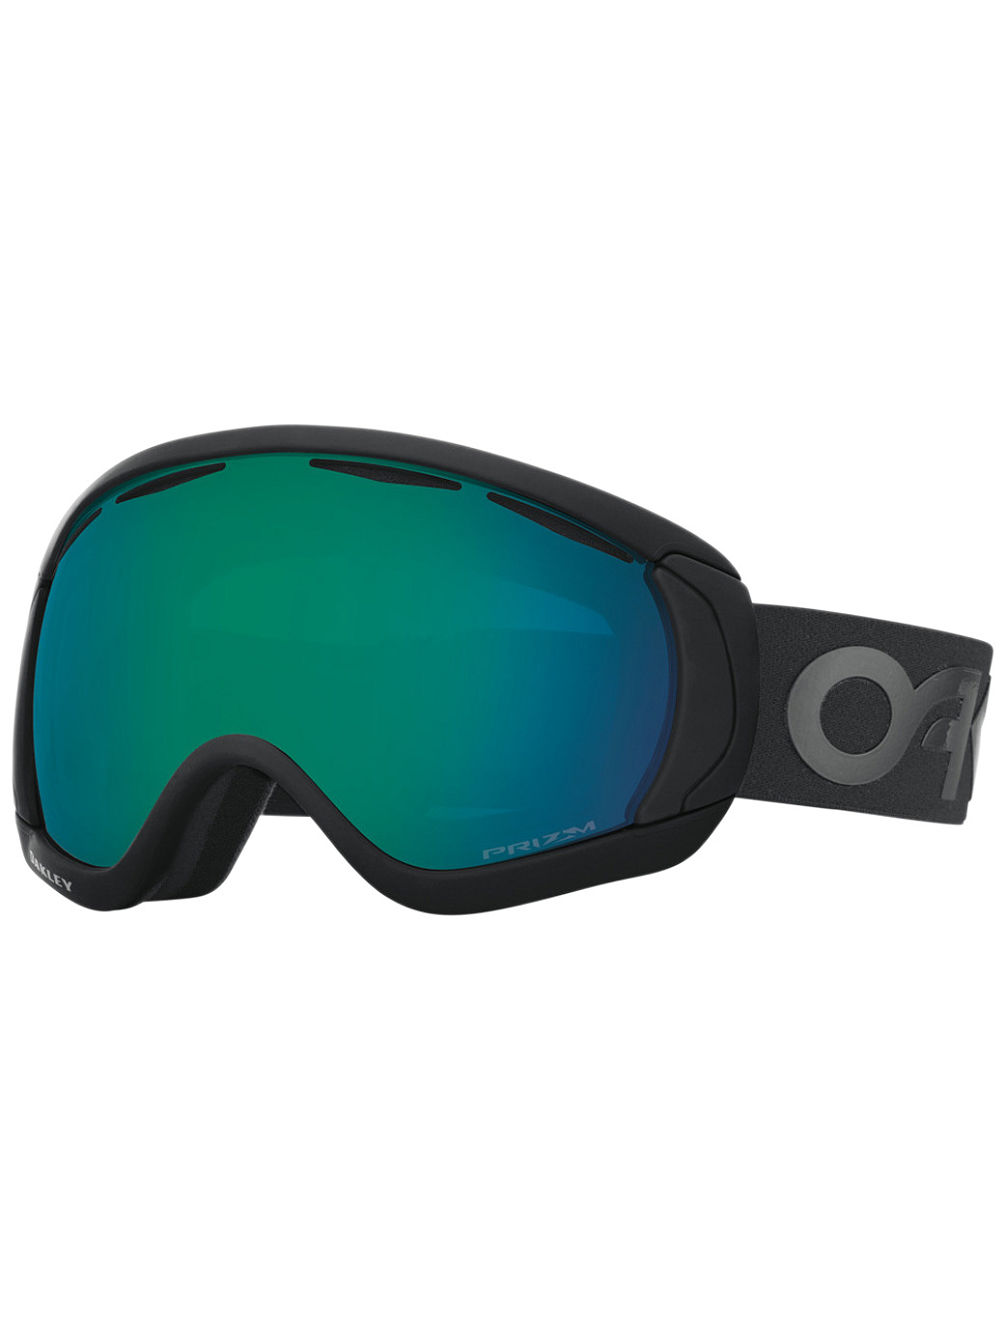 Canopy Factory Pilot Blackout Goggle